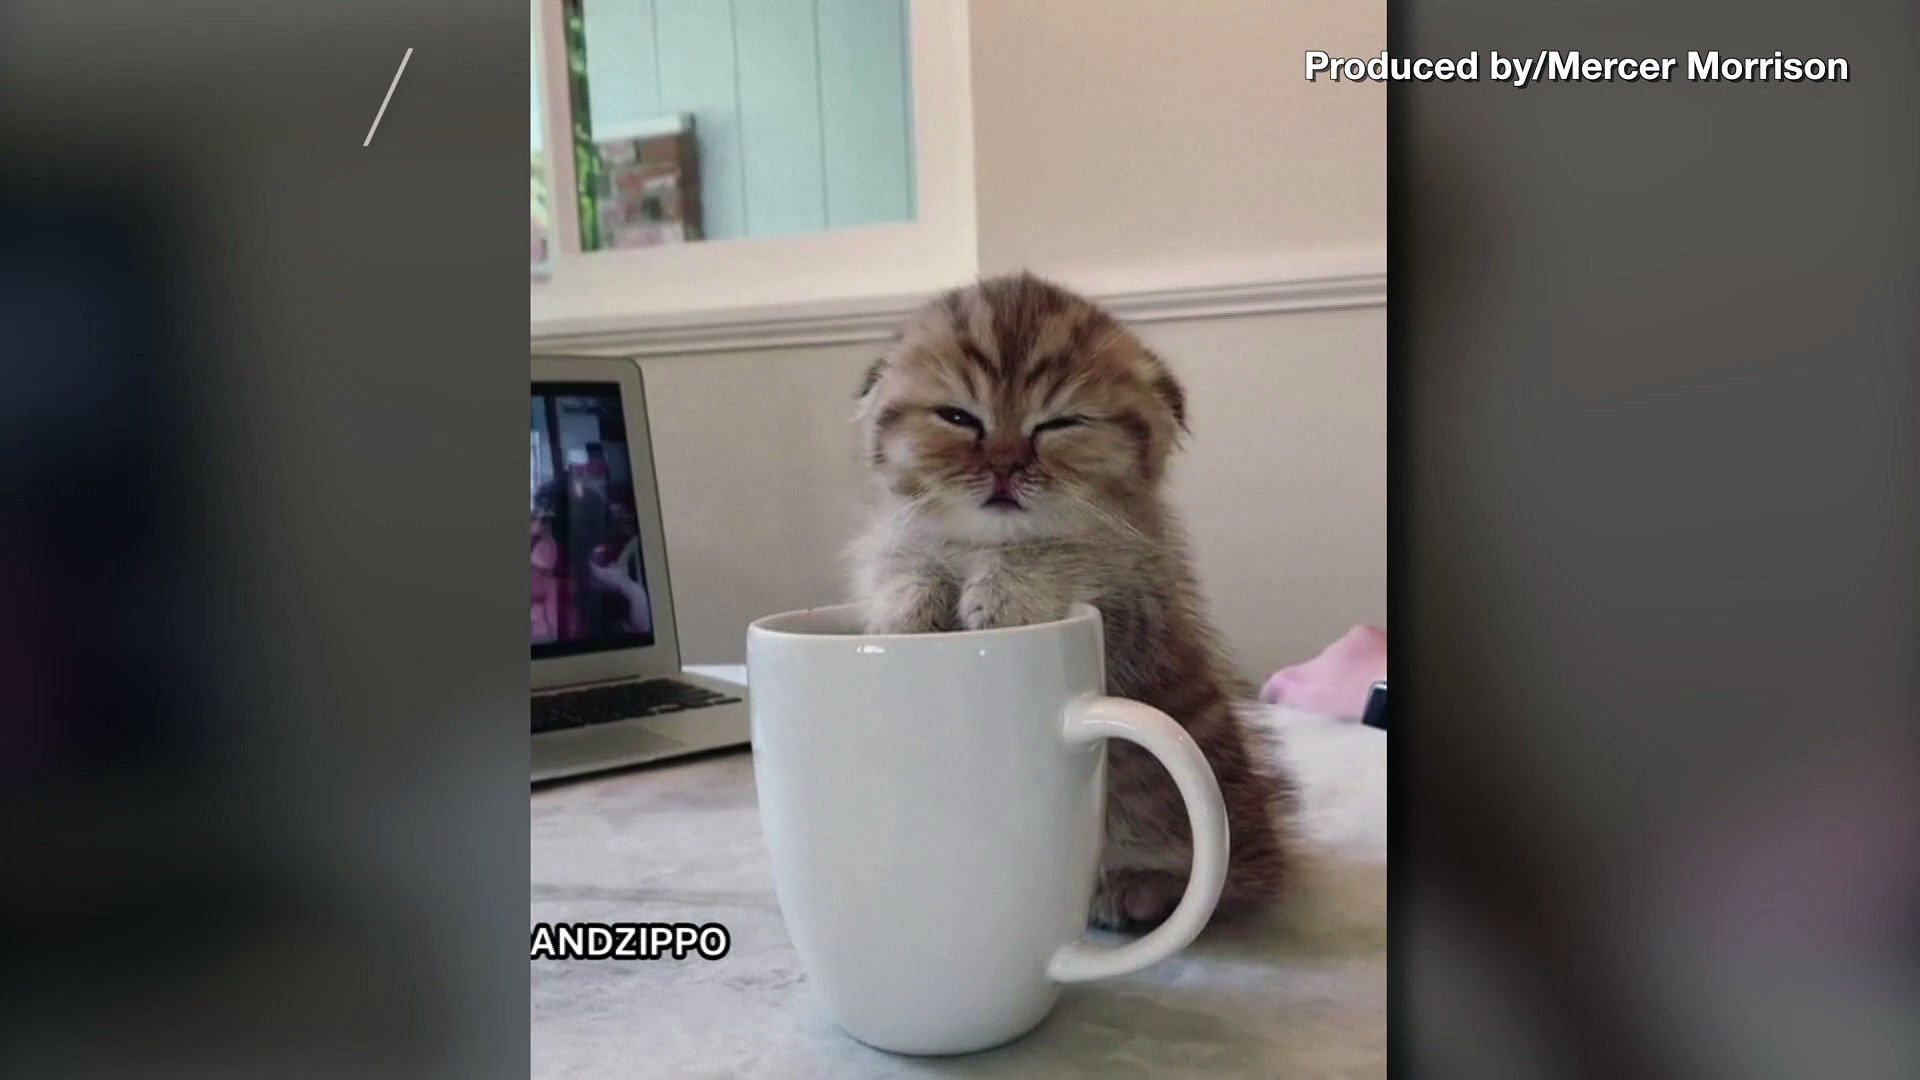 What's New, Sleepy Cat? Footage Shows Cute Kitty Perched on Coffee Mug About to Fall Asleep!